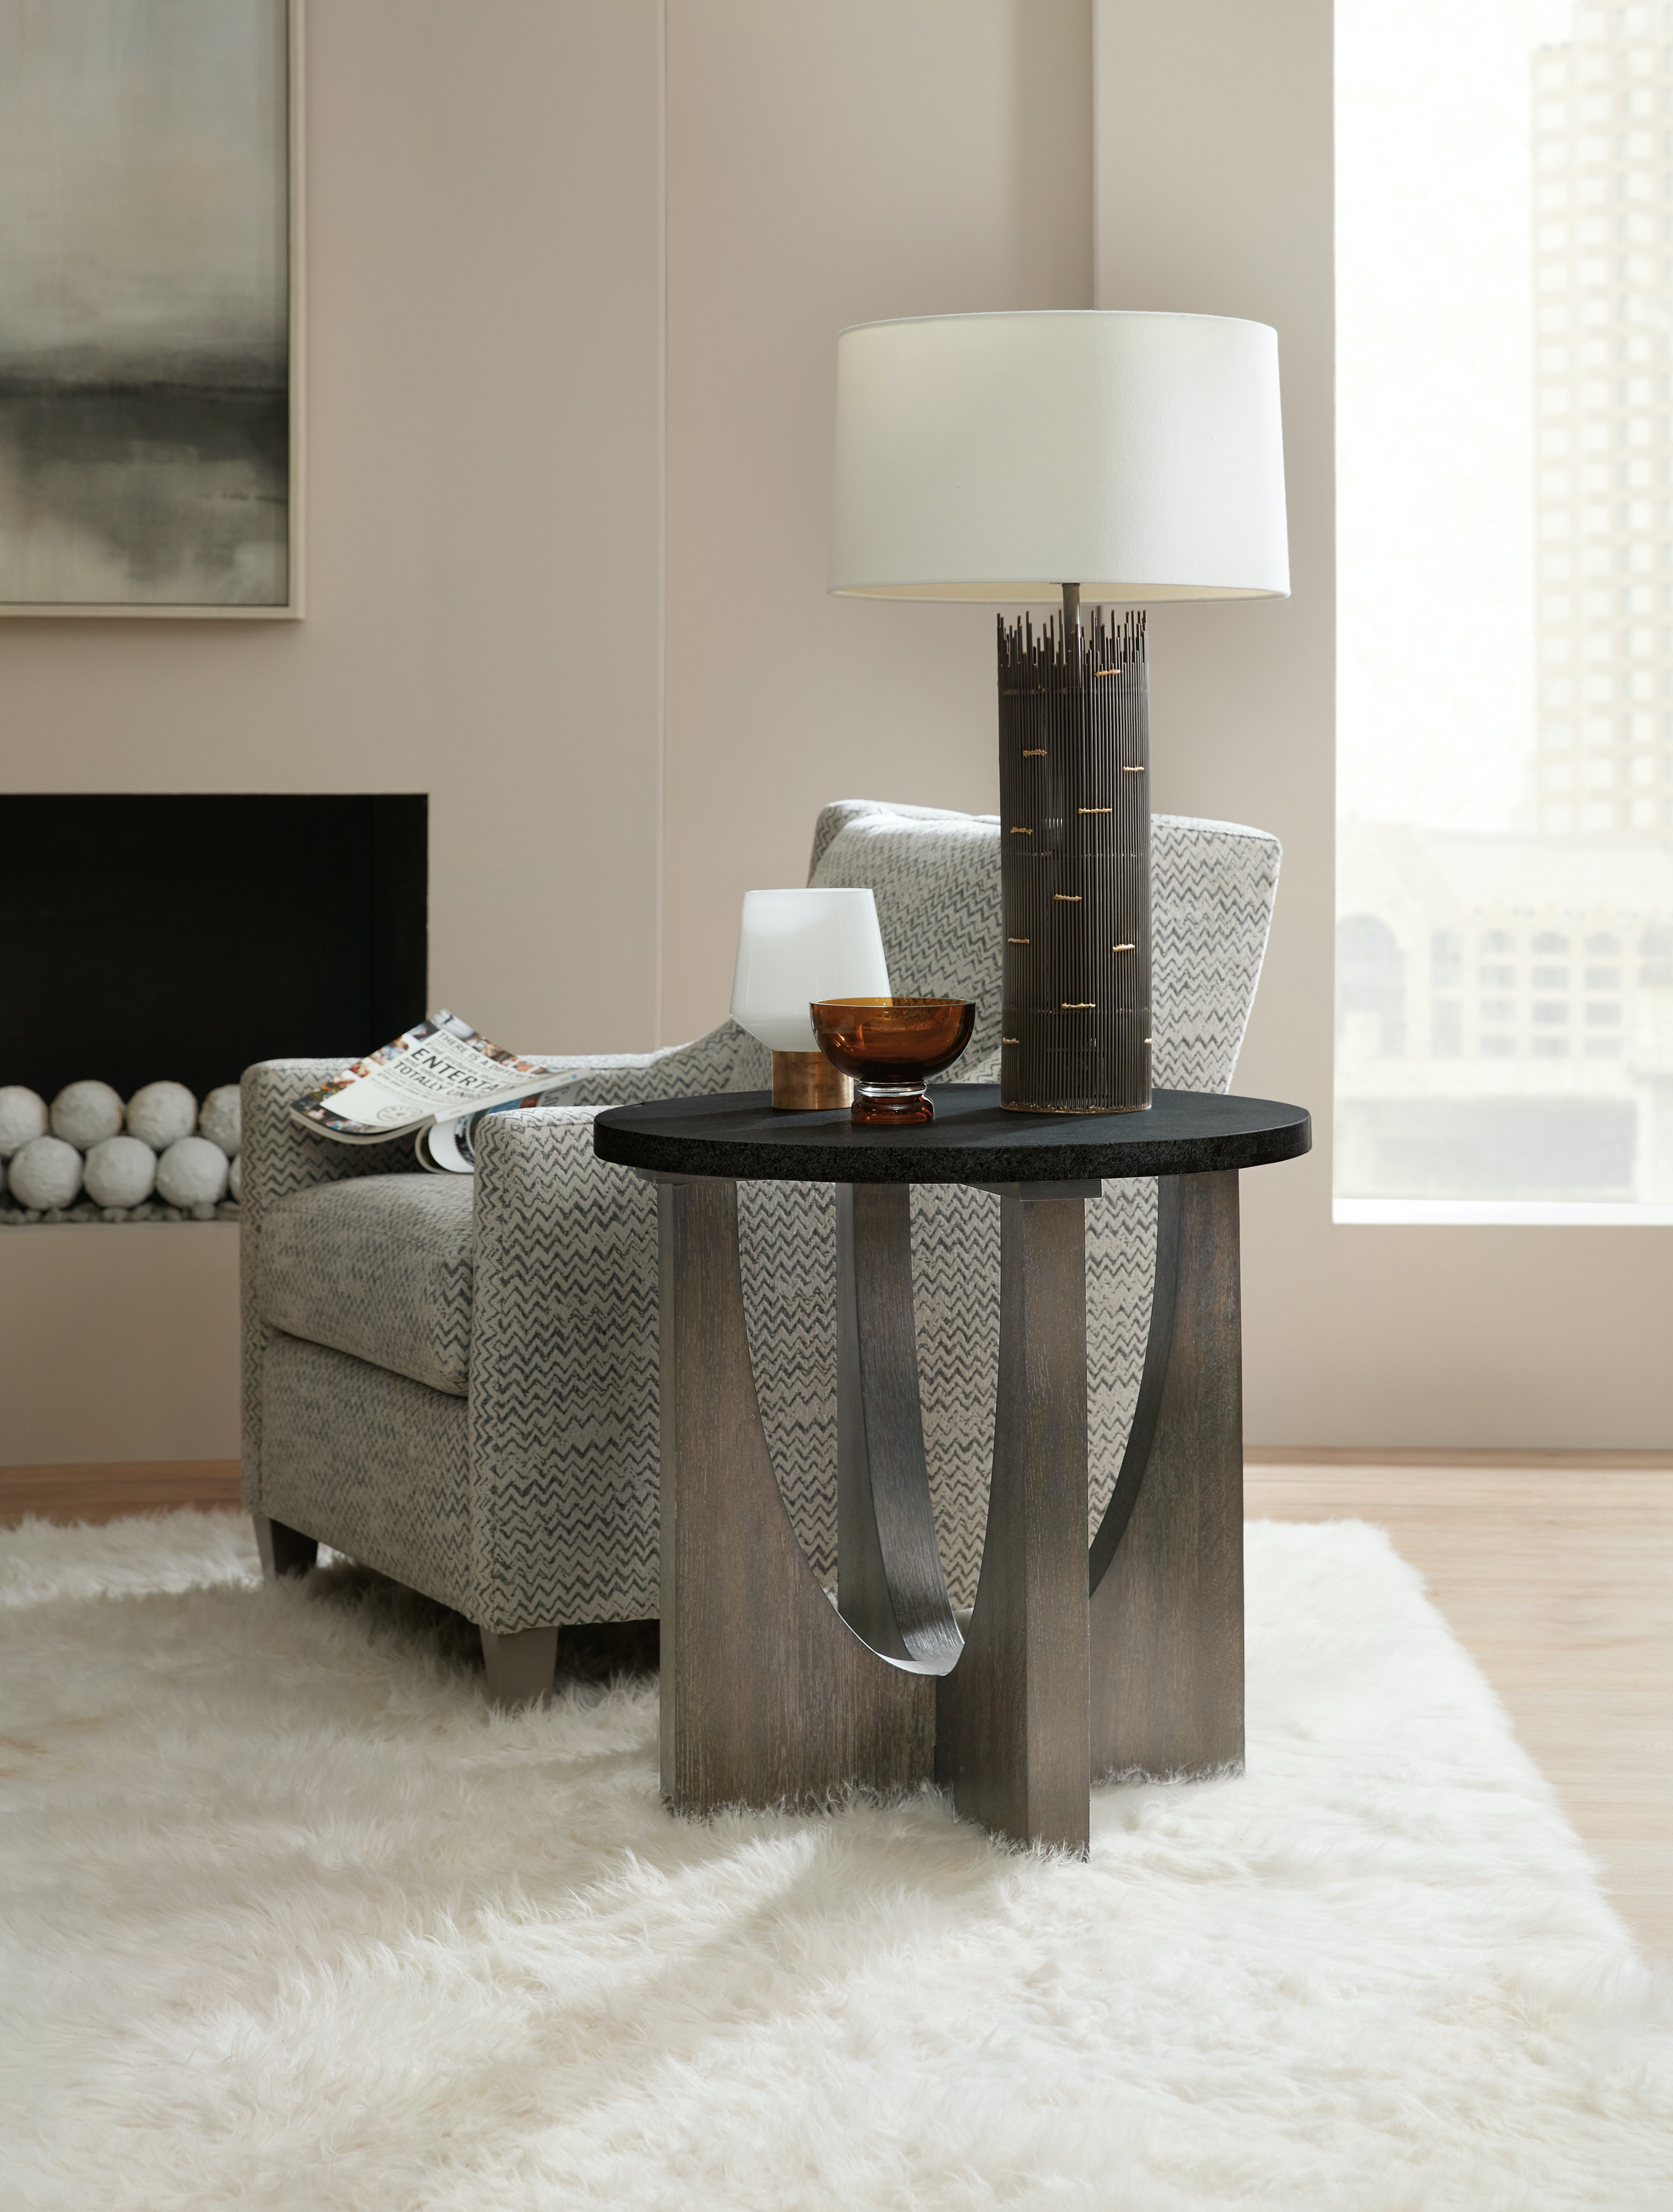 Hooker Furniture Miramar Aventura Tomasso Round End Table HS620280113DKW  From Walter E. Smithe Furniture +